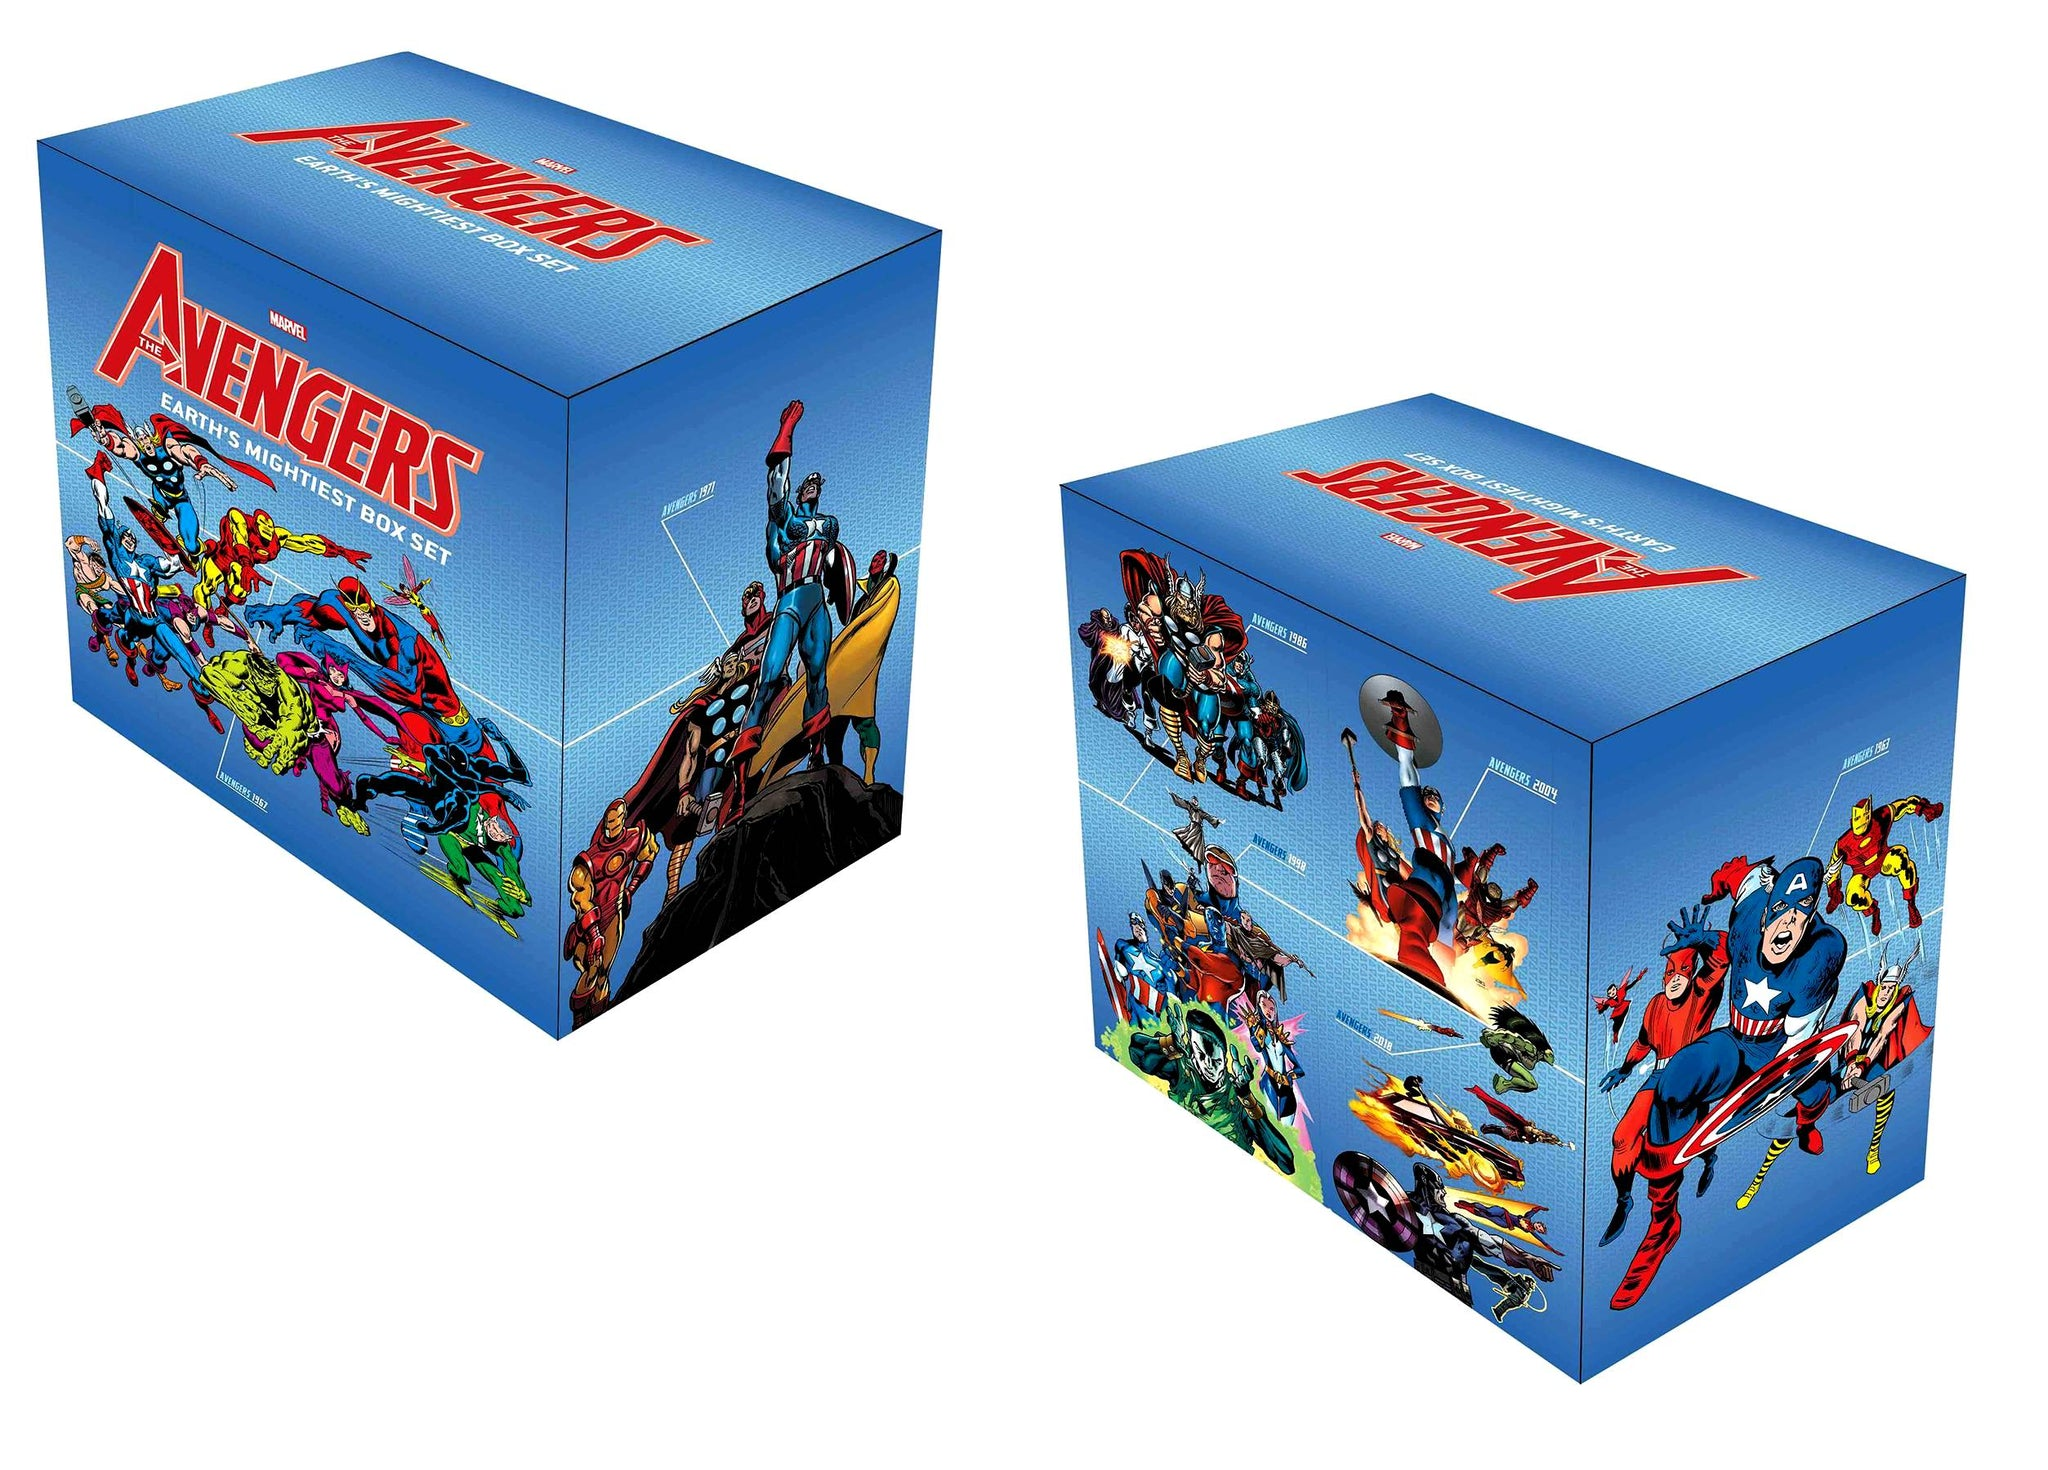 Avengers: Earth's Mightiest Box Set